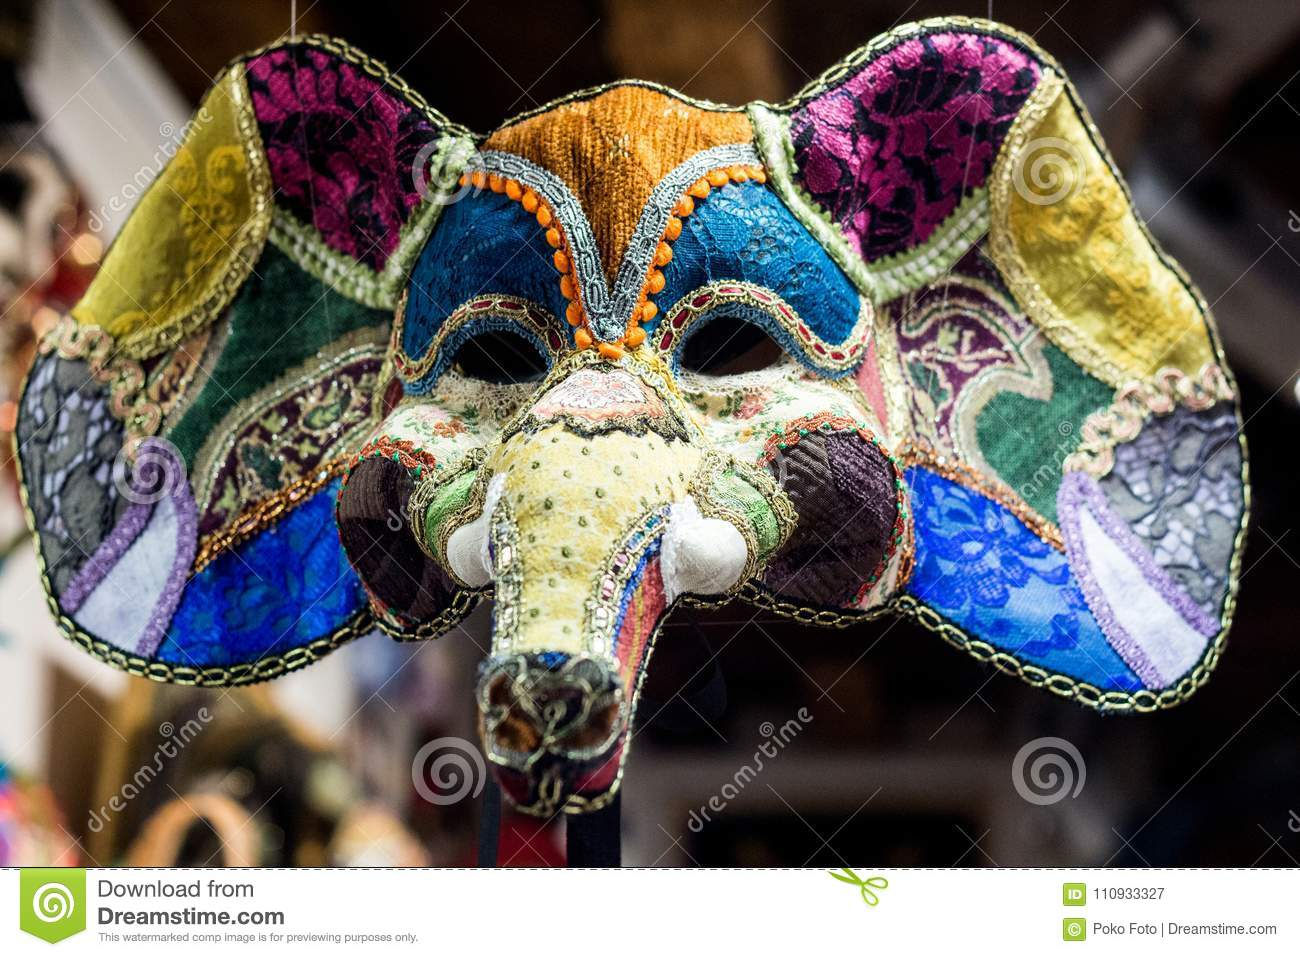 Elephant Carnival mask stock image. Image of medieval - 110933327